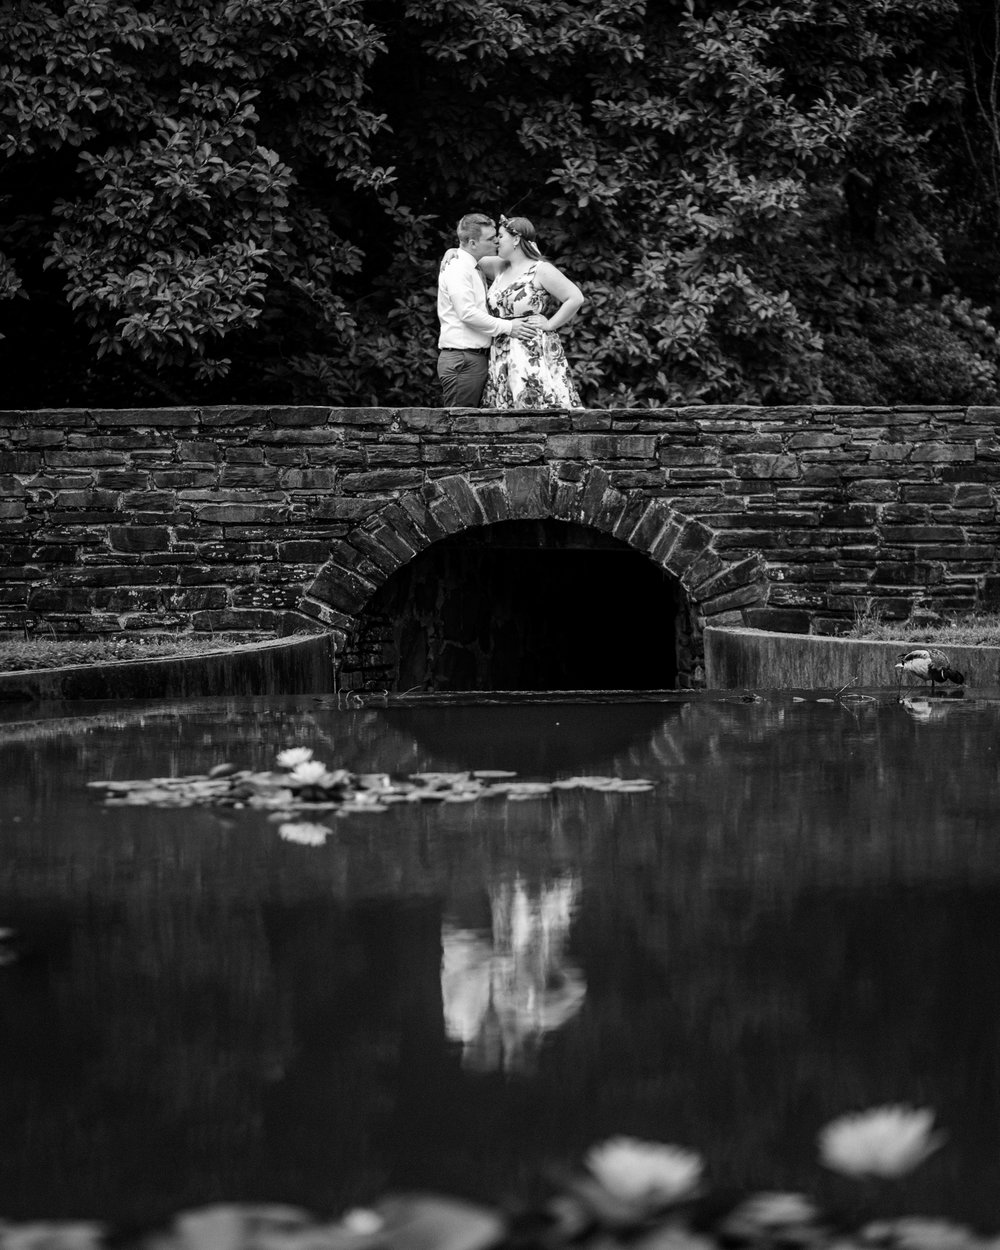 wedding-duke-gardens-zoe-litaker-photography.jpg